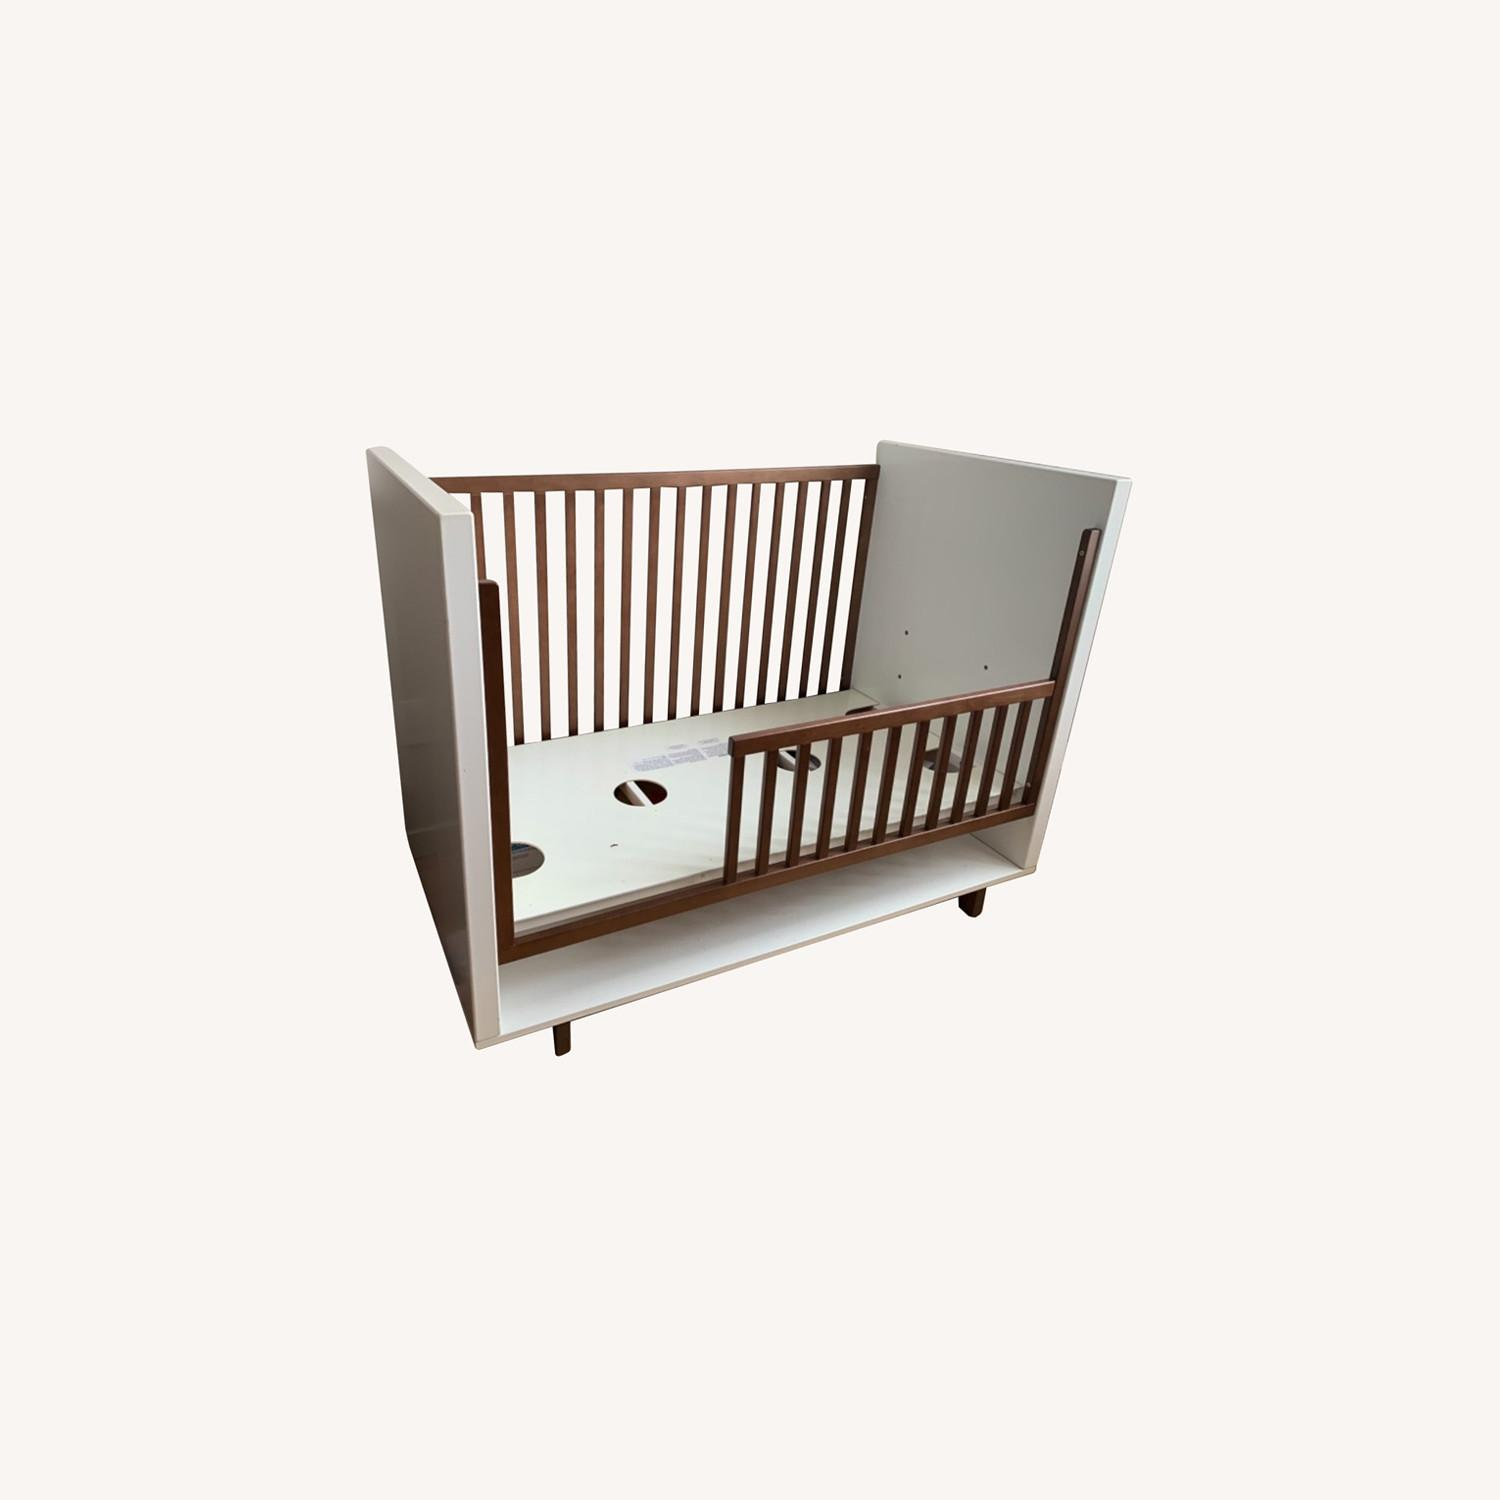 Room & Board Moda Crib and Toddler Bed - image-0